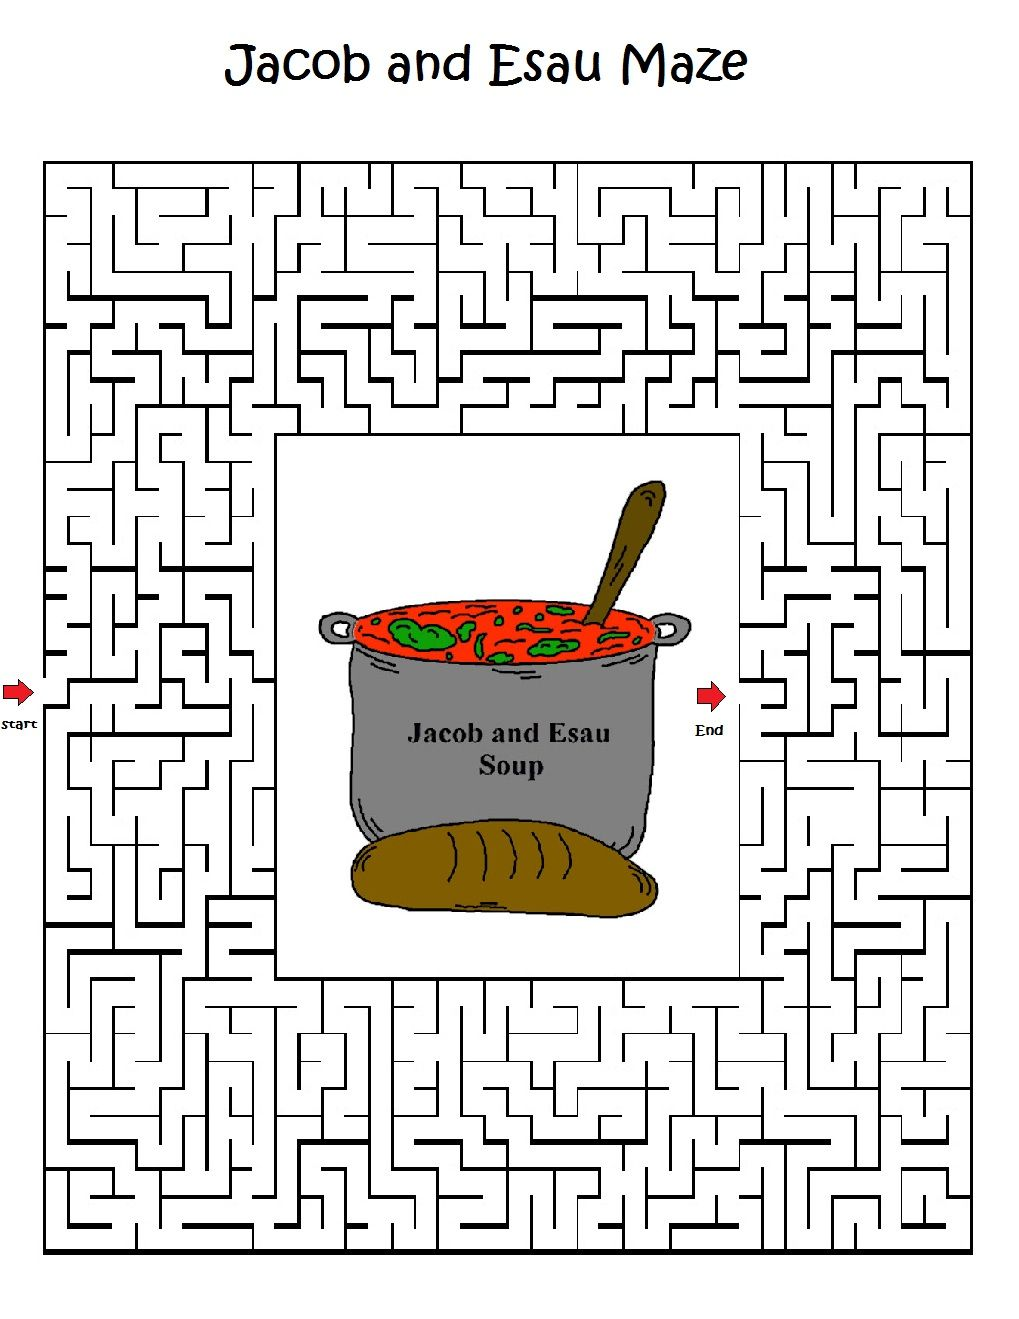 Jacob and Esau Maze.jpg 1,019×1,319 pixels | Sunday School ...